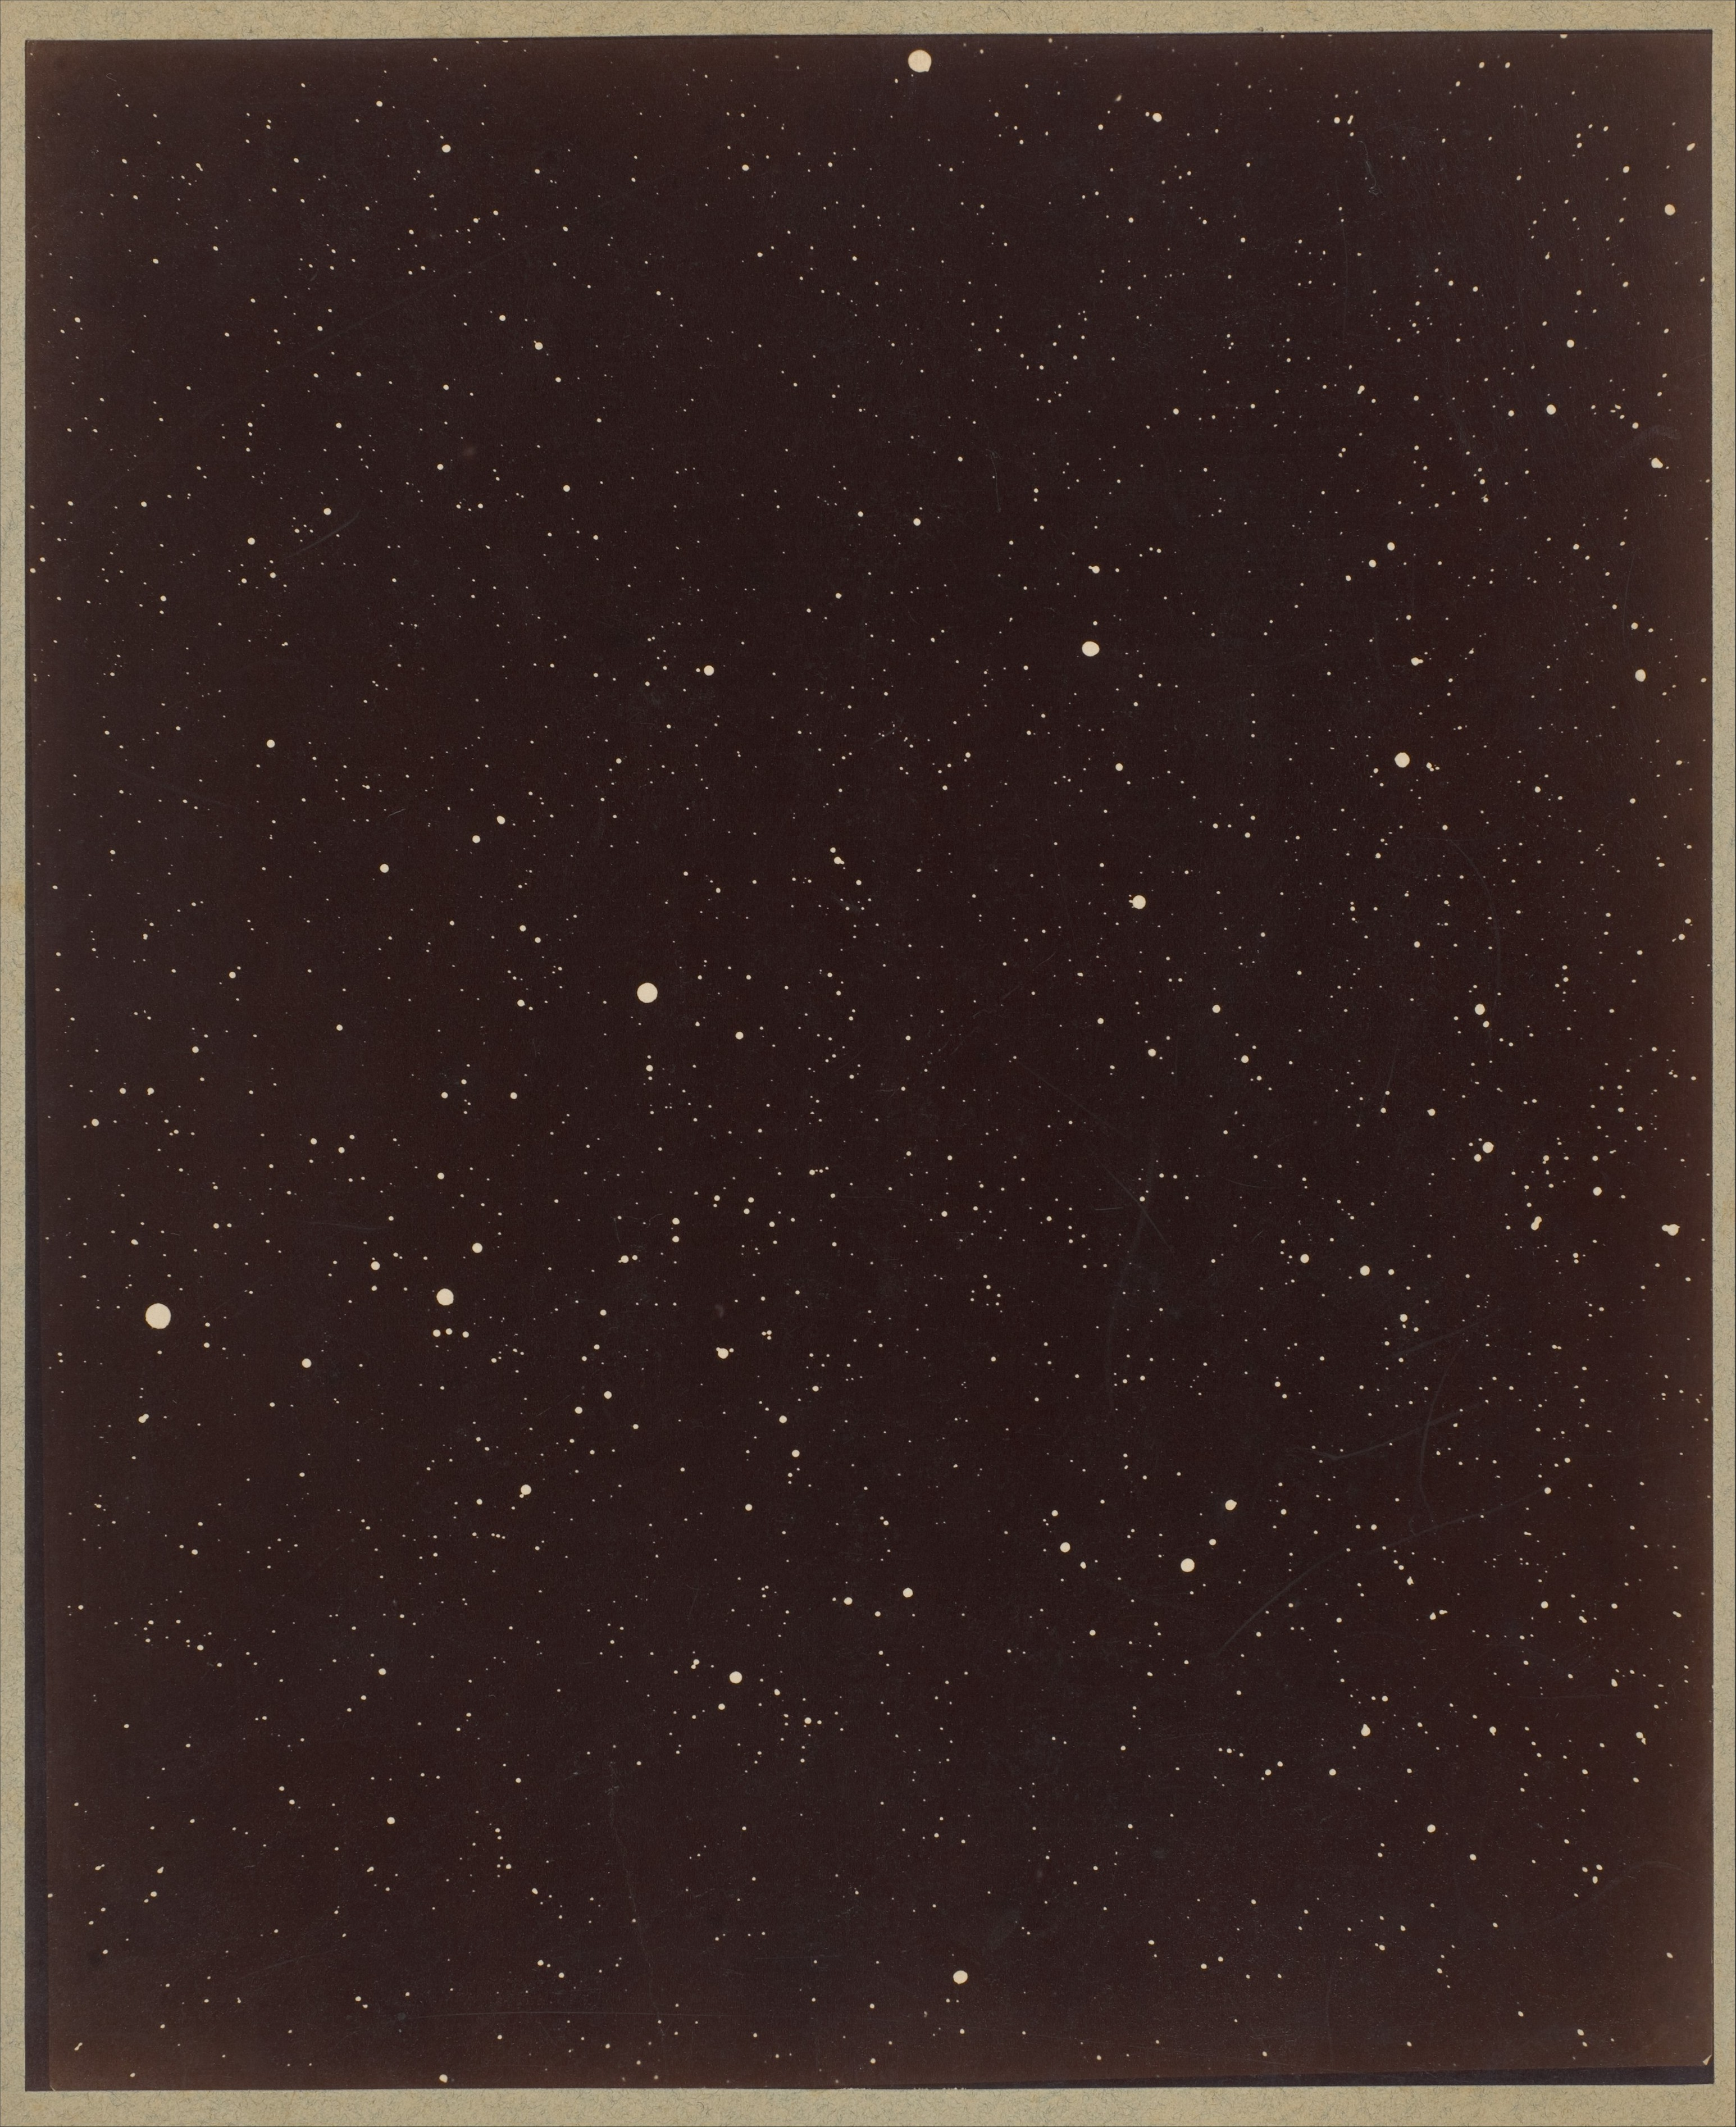 A Section of the Constellation Cygnus (August 13, 1885)